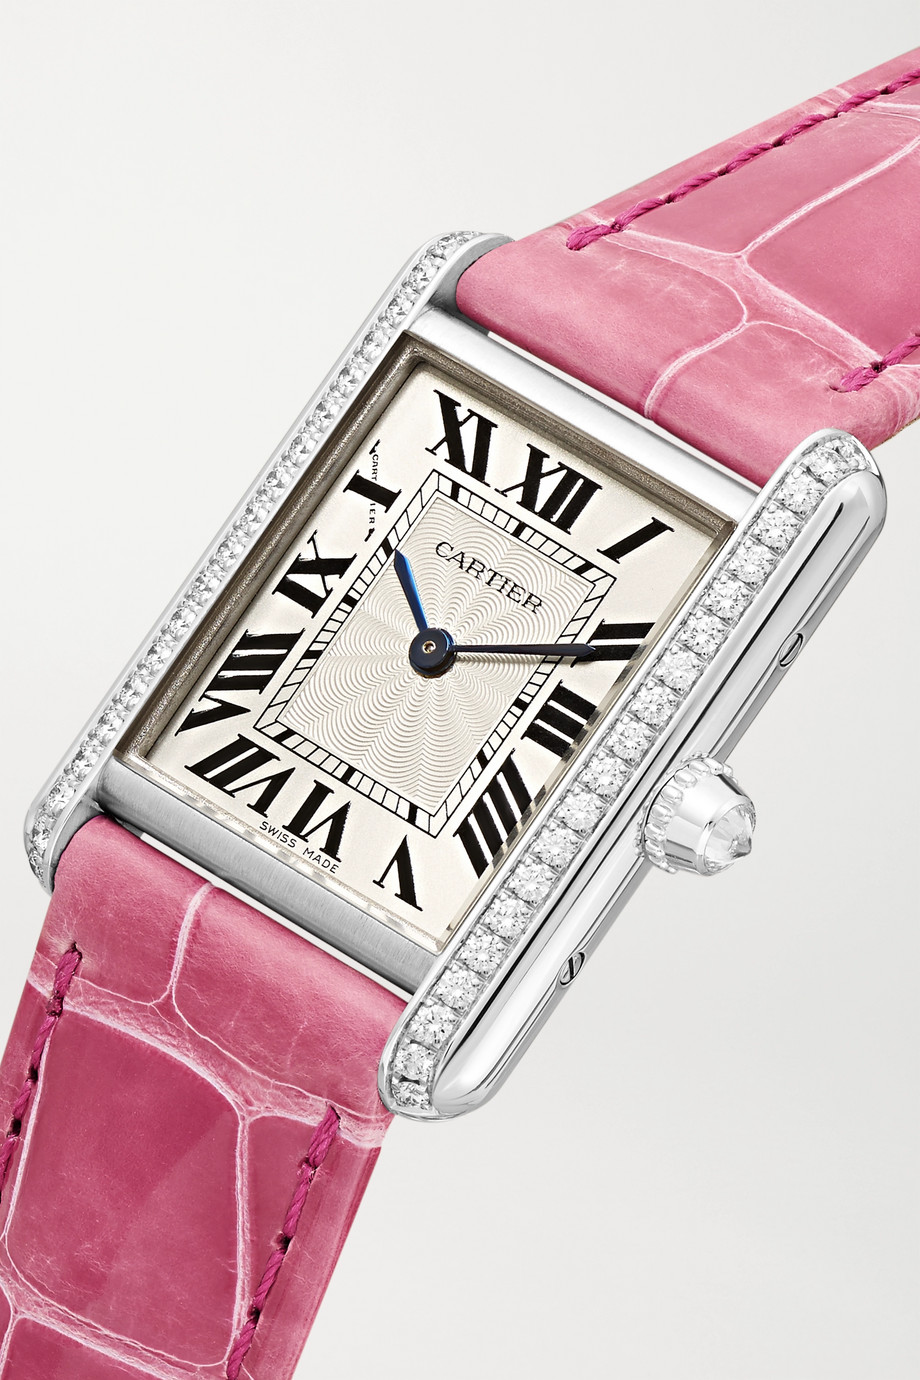 Cartier Tank Louis Cartier 22mm small rhodiumized 18-karat white gold, alligator and diamond watch